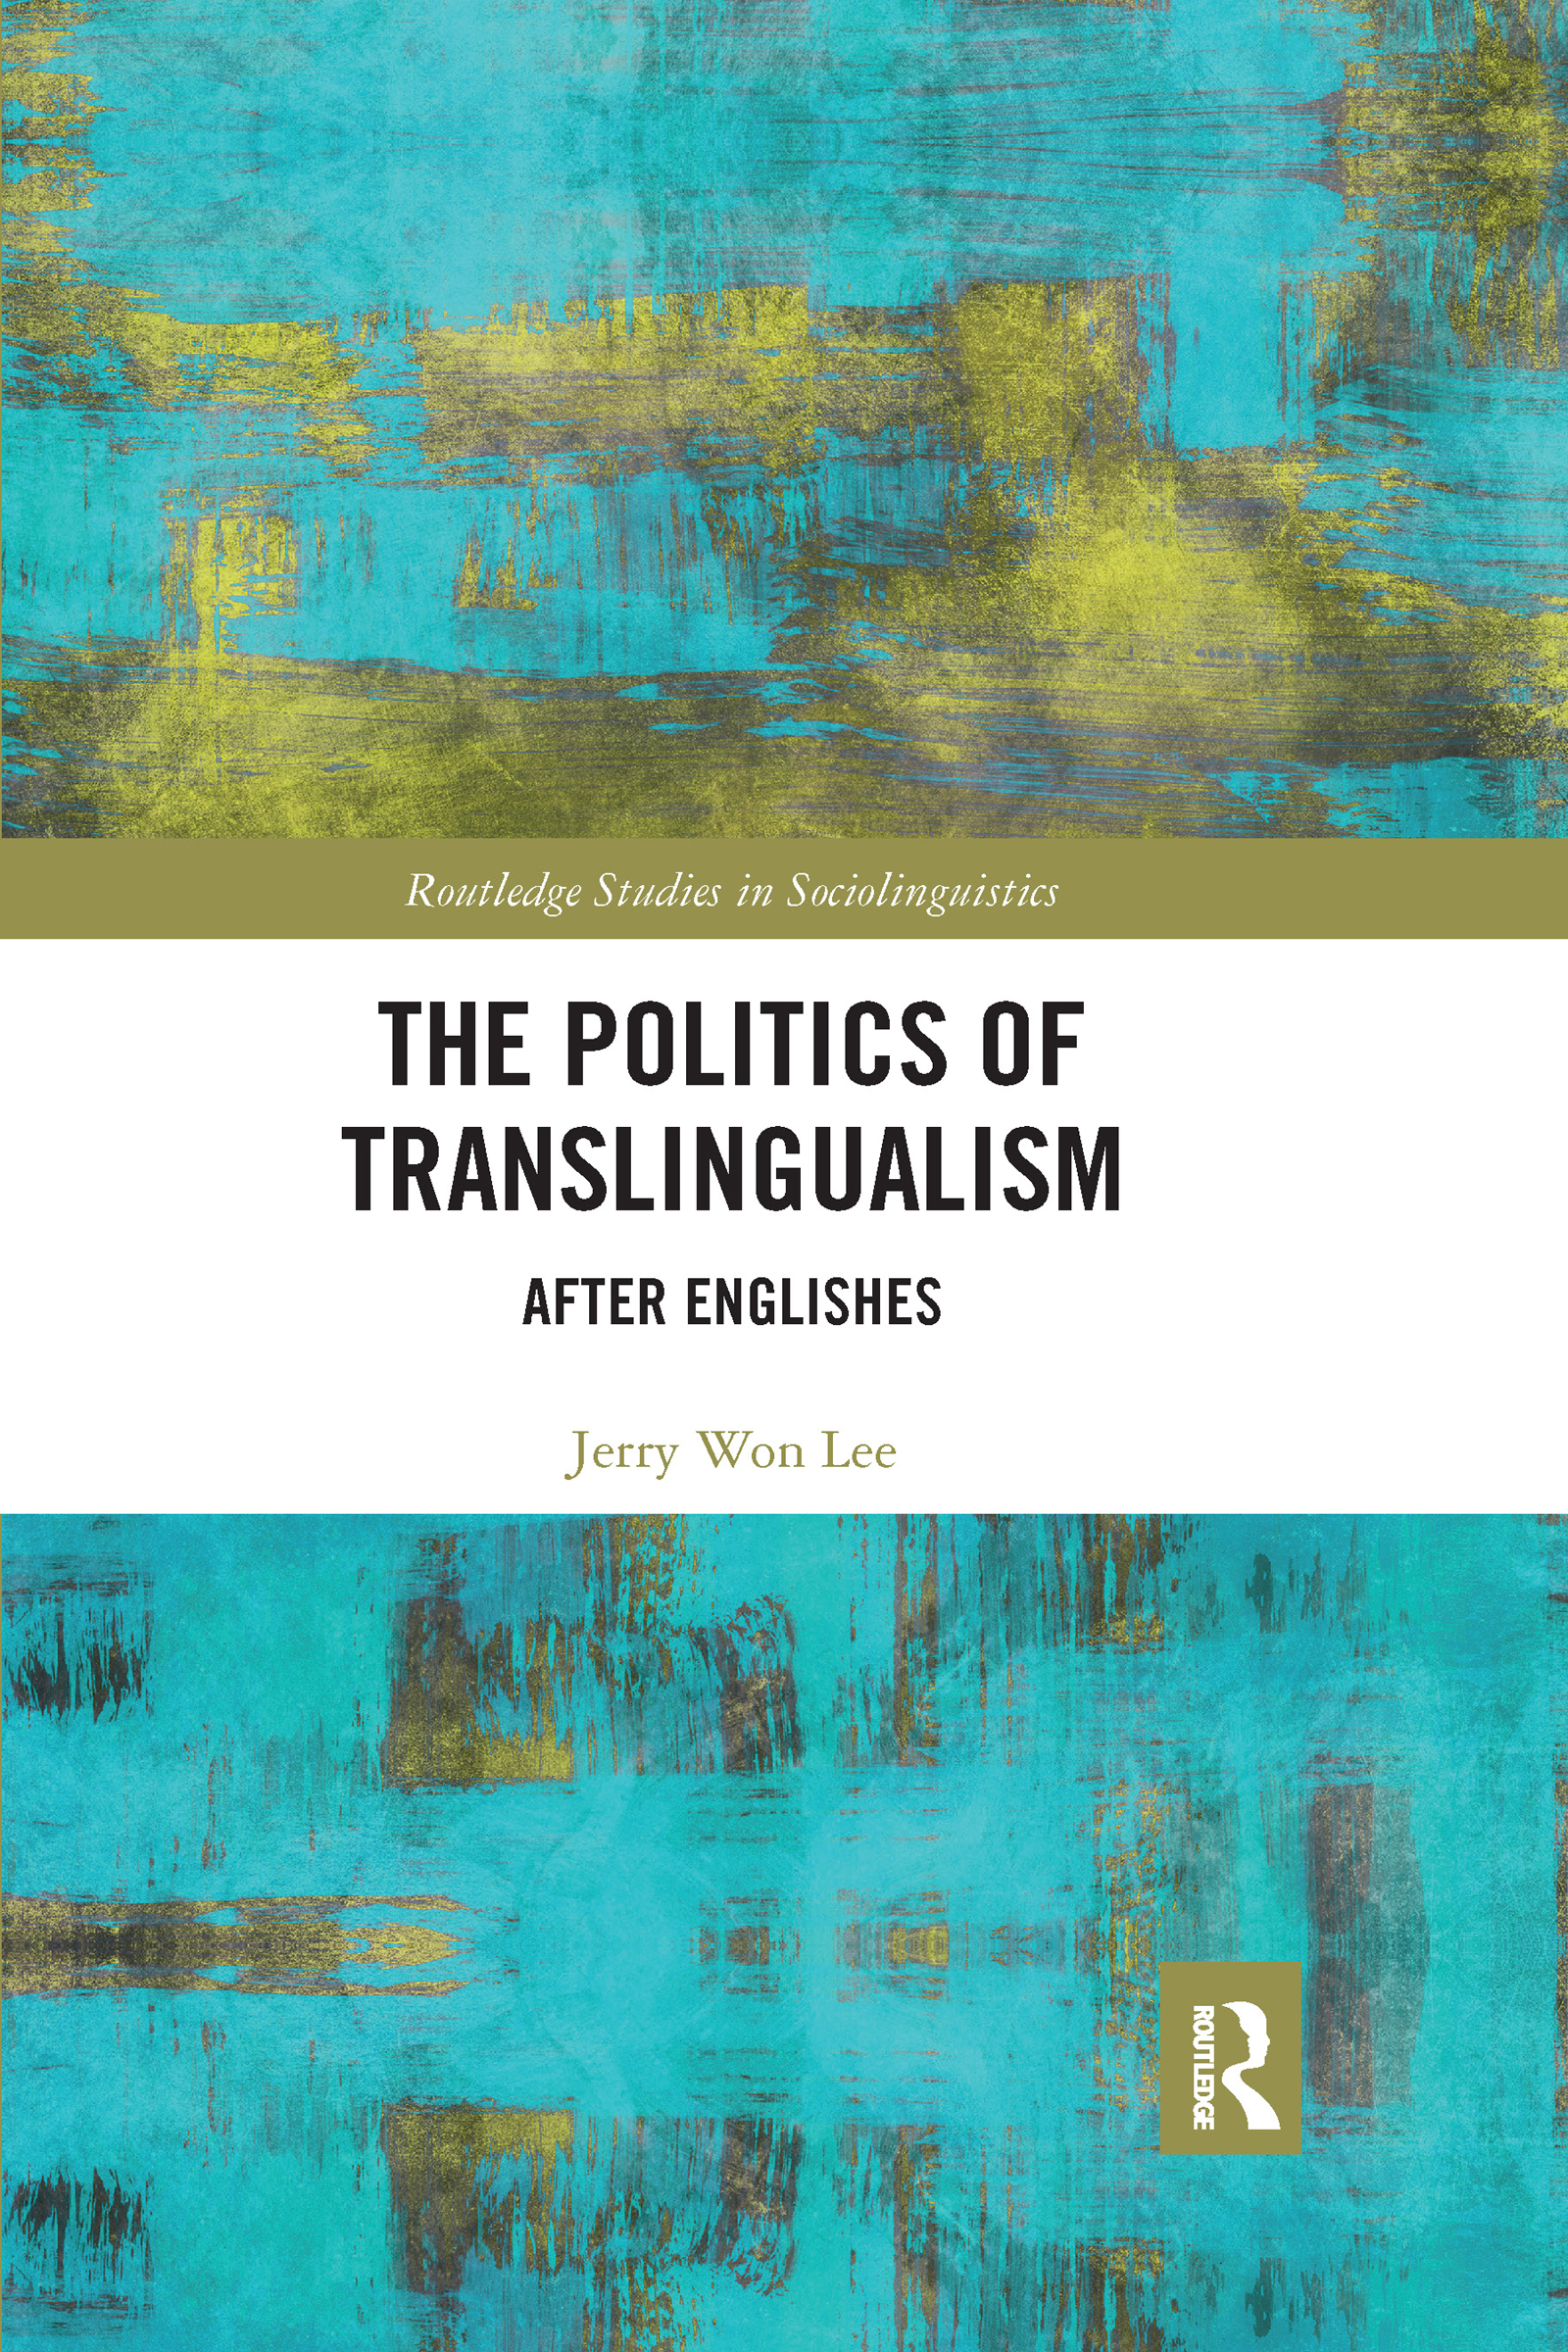 The Politics of Translingualism